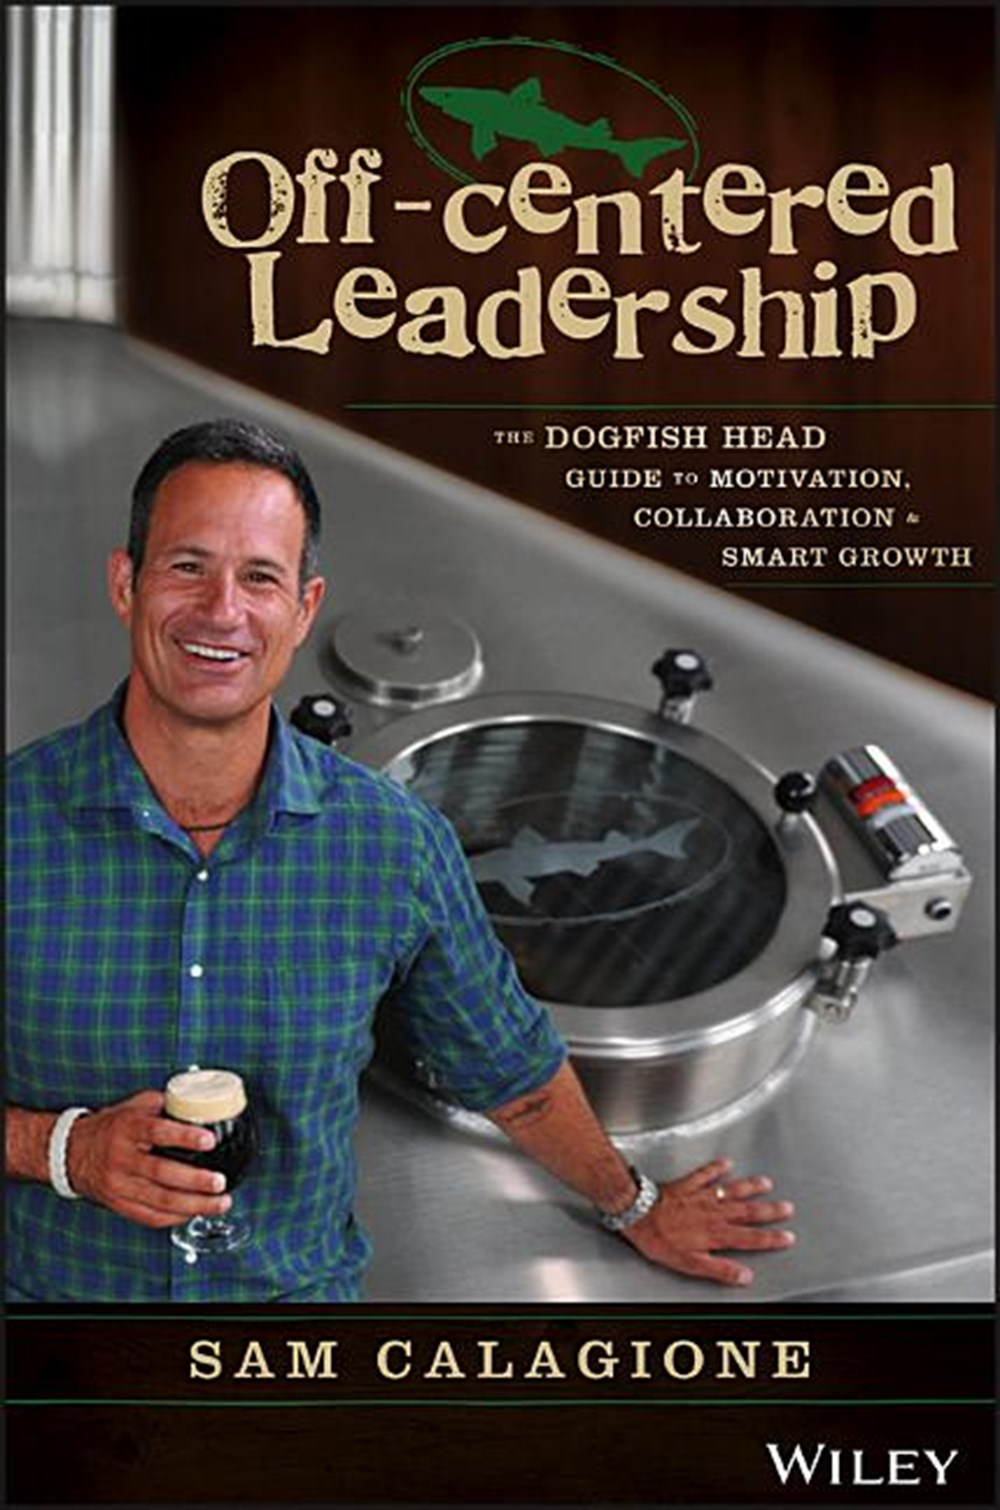 Off-Centered Leadership The Dogfish Head Guide to Motivation, Collaboration and Smart Growth